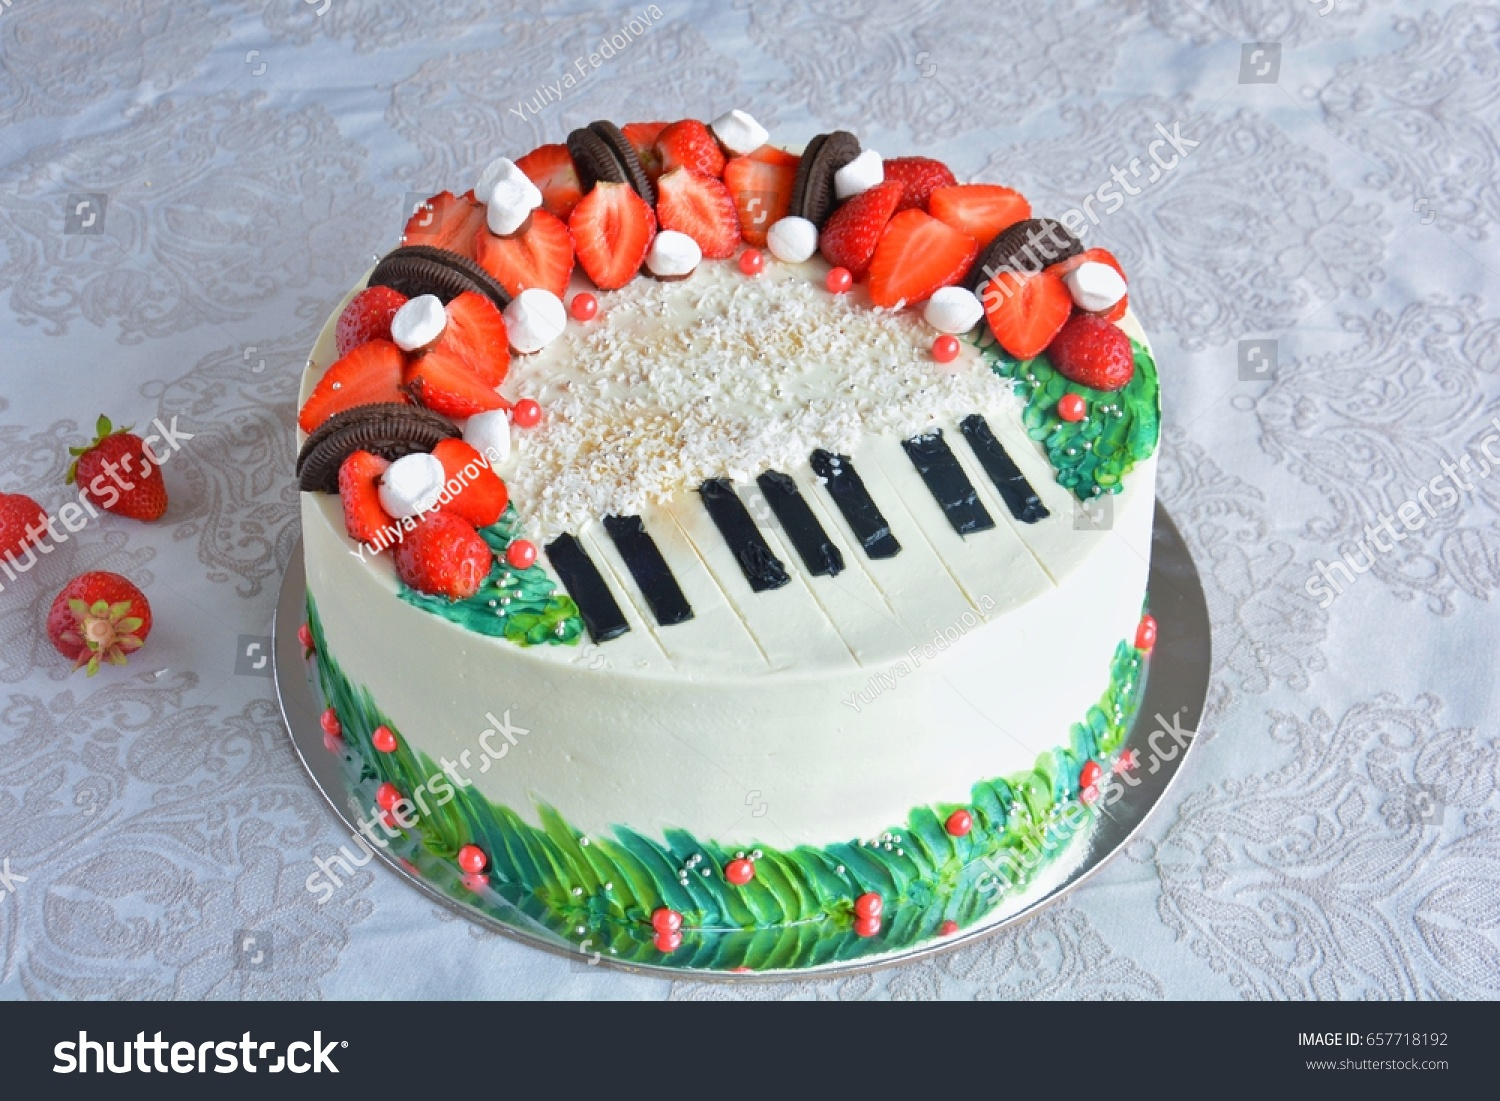 Birthday Cake Decorated With Fondant Rounded Symbolically Presenting Piano And Cello Instruments On White